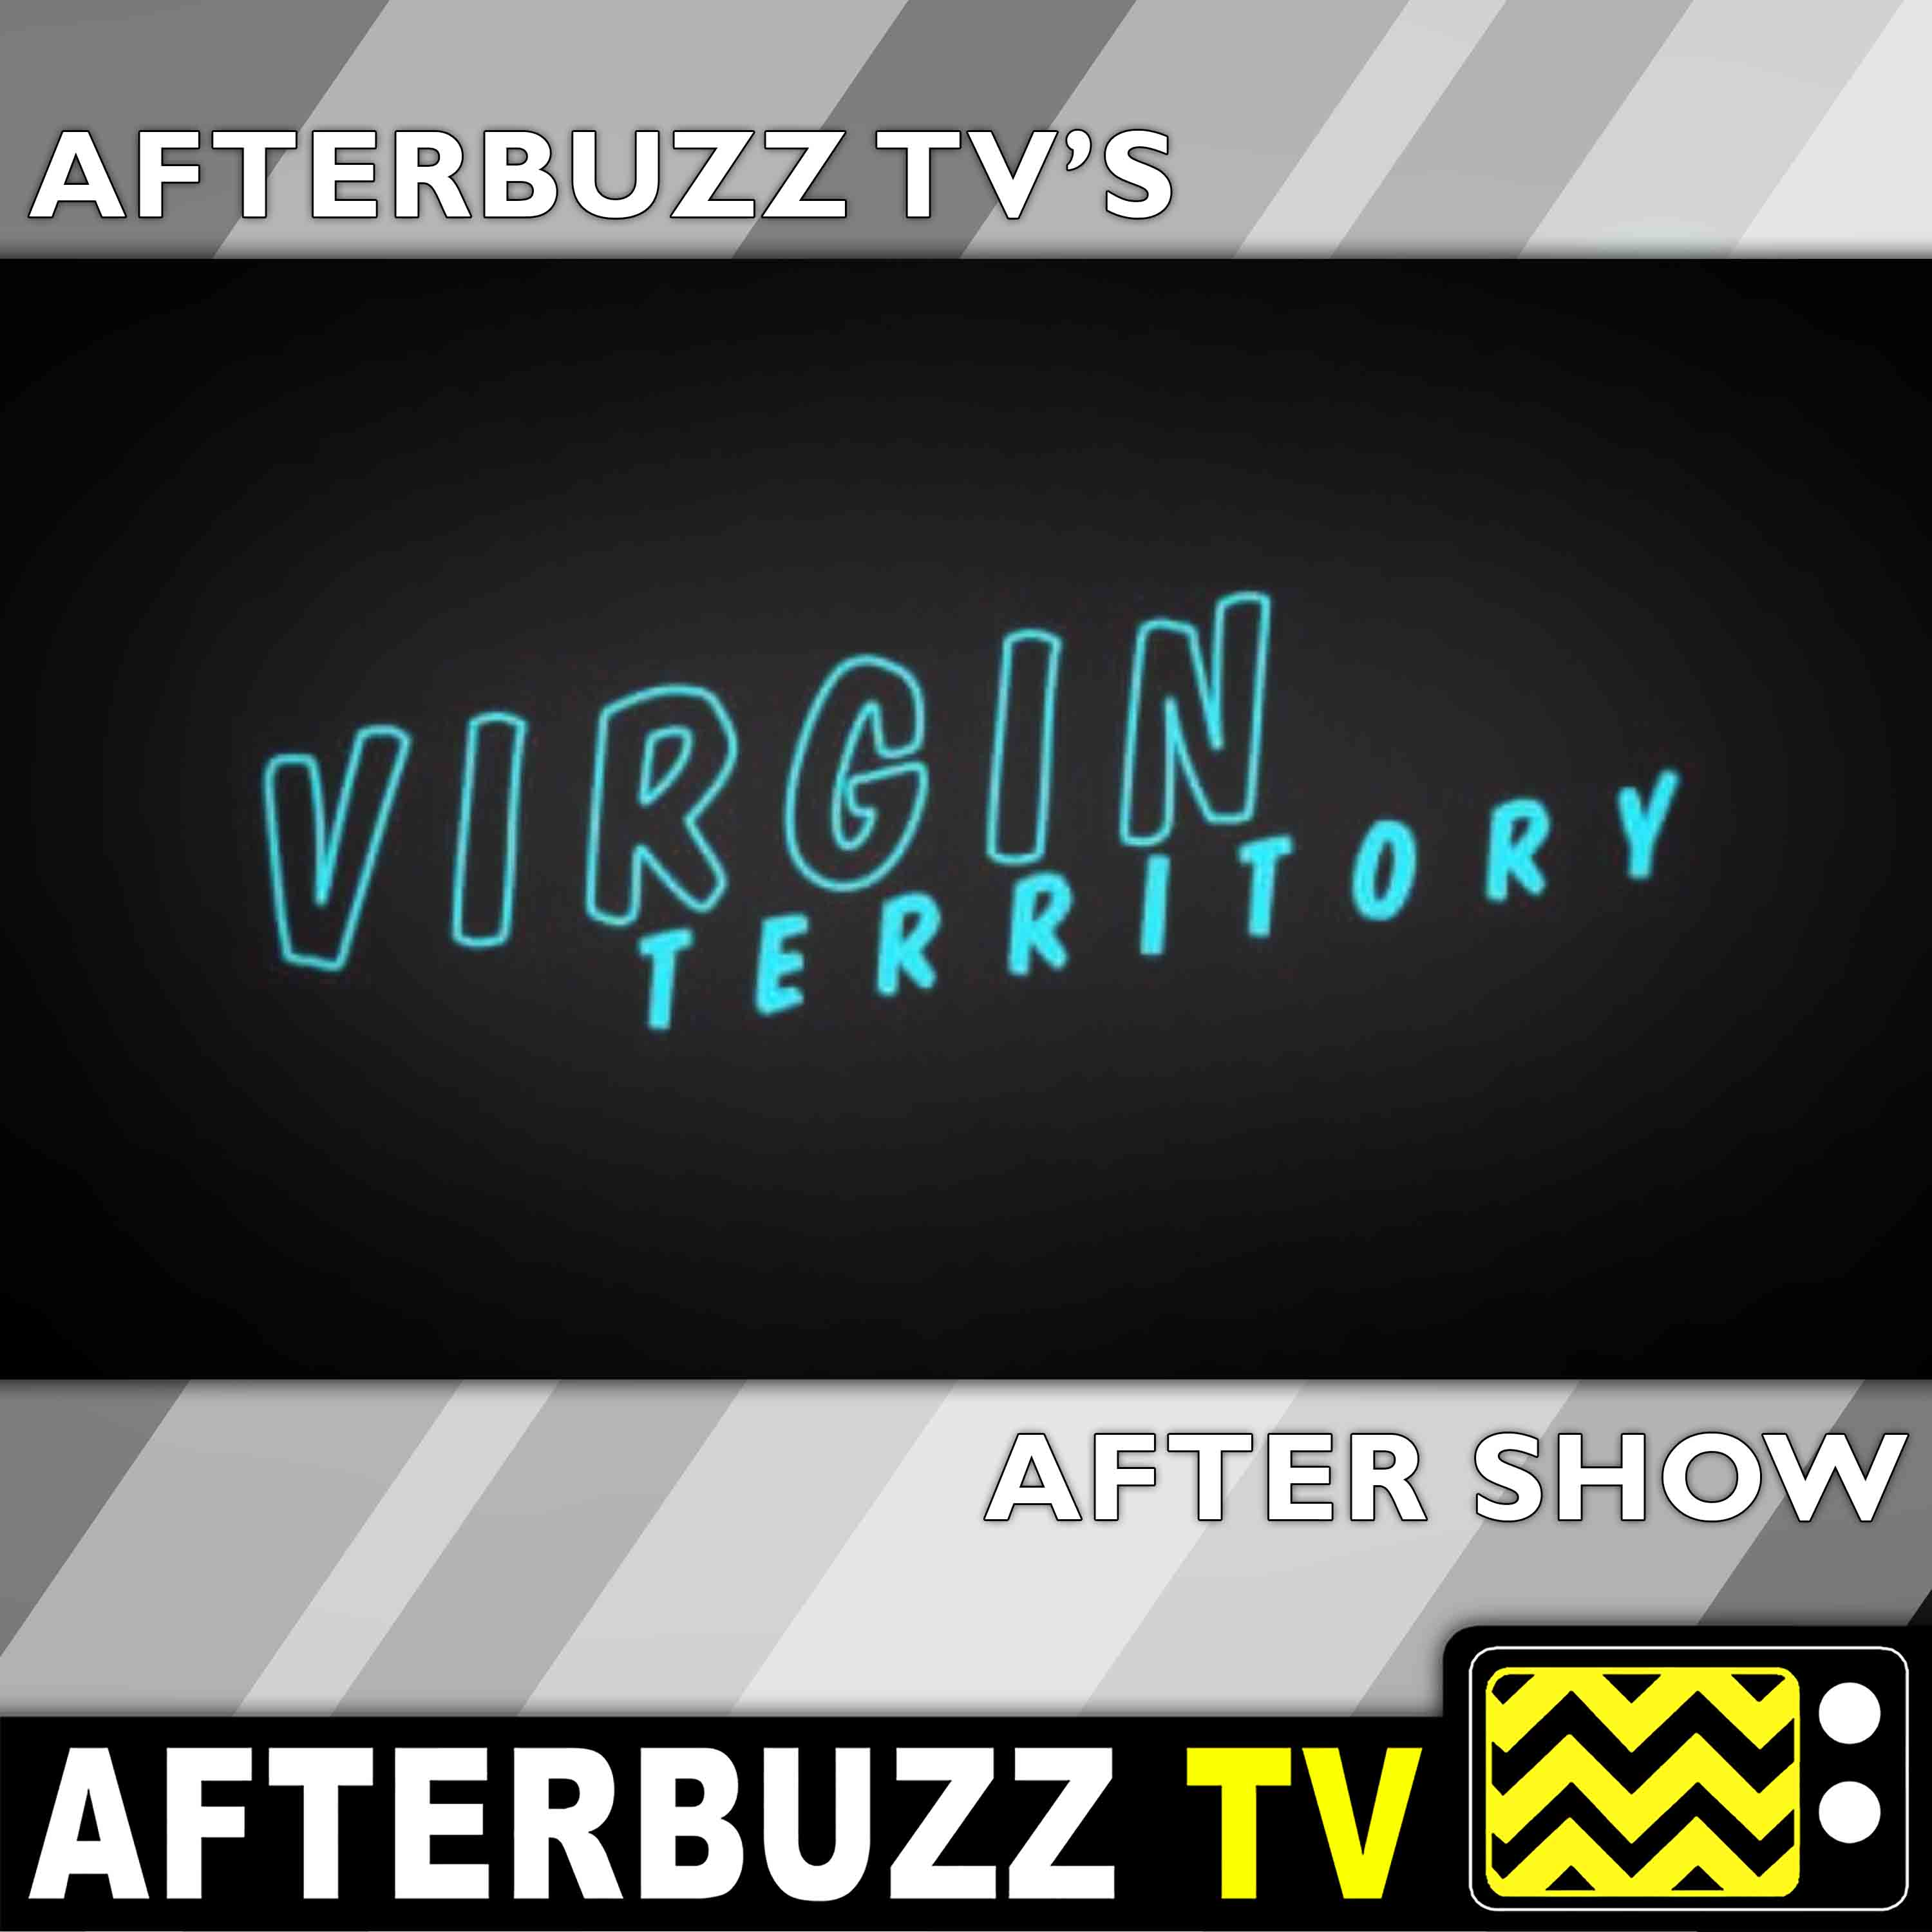 Virgin Territory Reviews and After Show